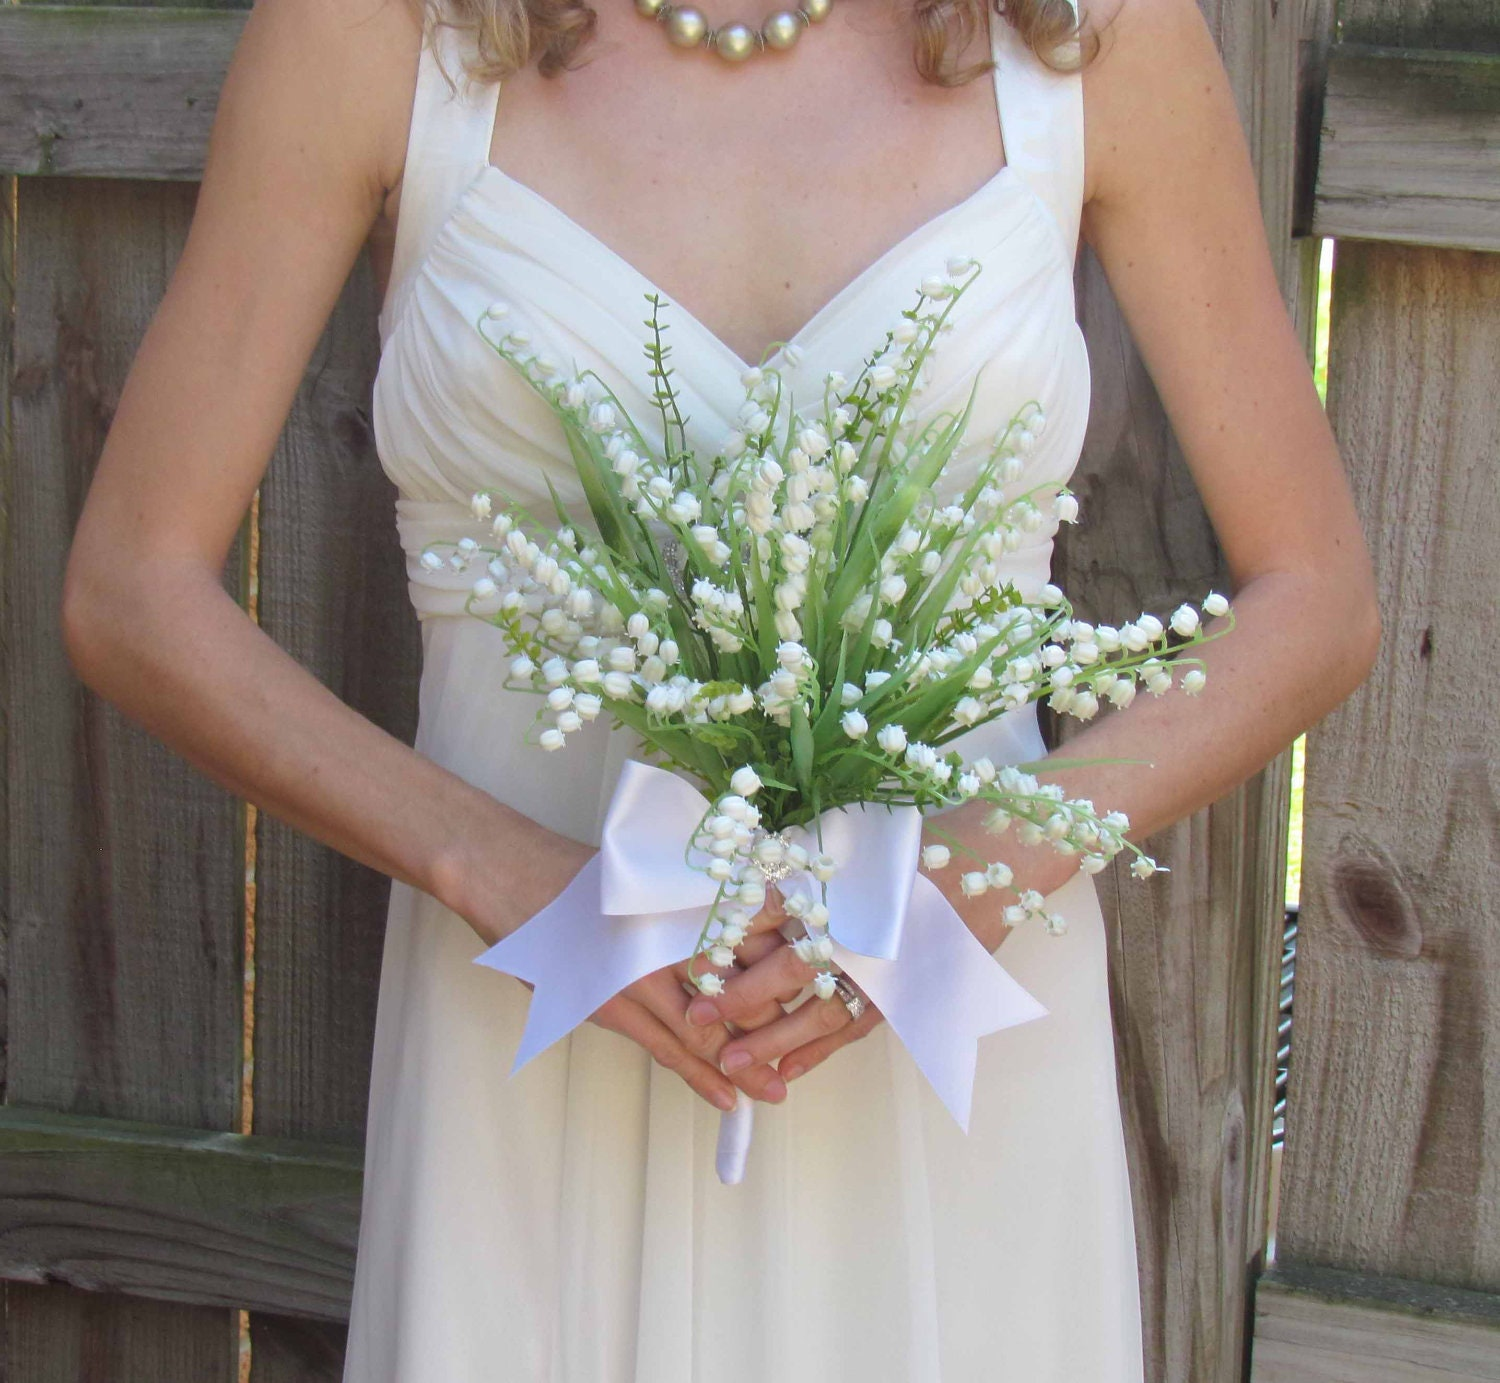 Lily Of The Valley Bouquet: Lily Of The Valley Wedding Bouquet SALE PRICED Ready To Ship